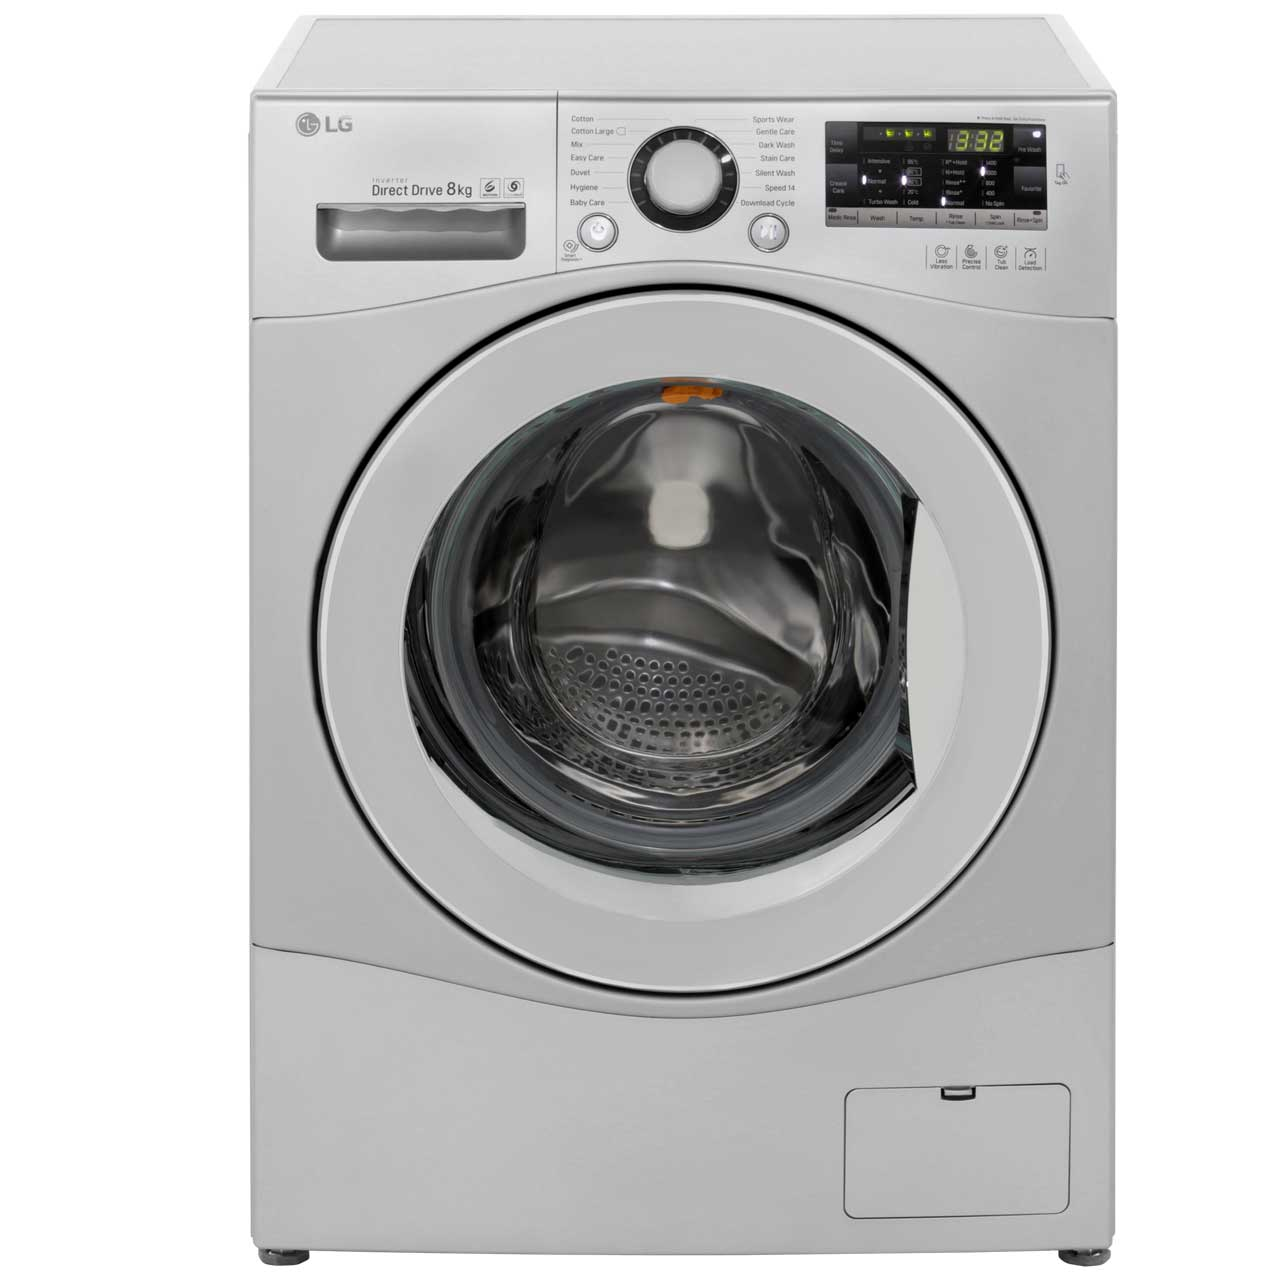 LG FH4A8TDN4 Free Standing Washing Machine in Silver